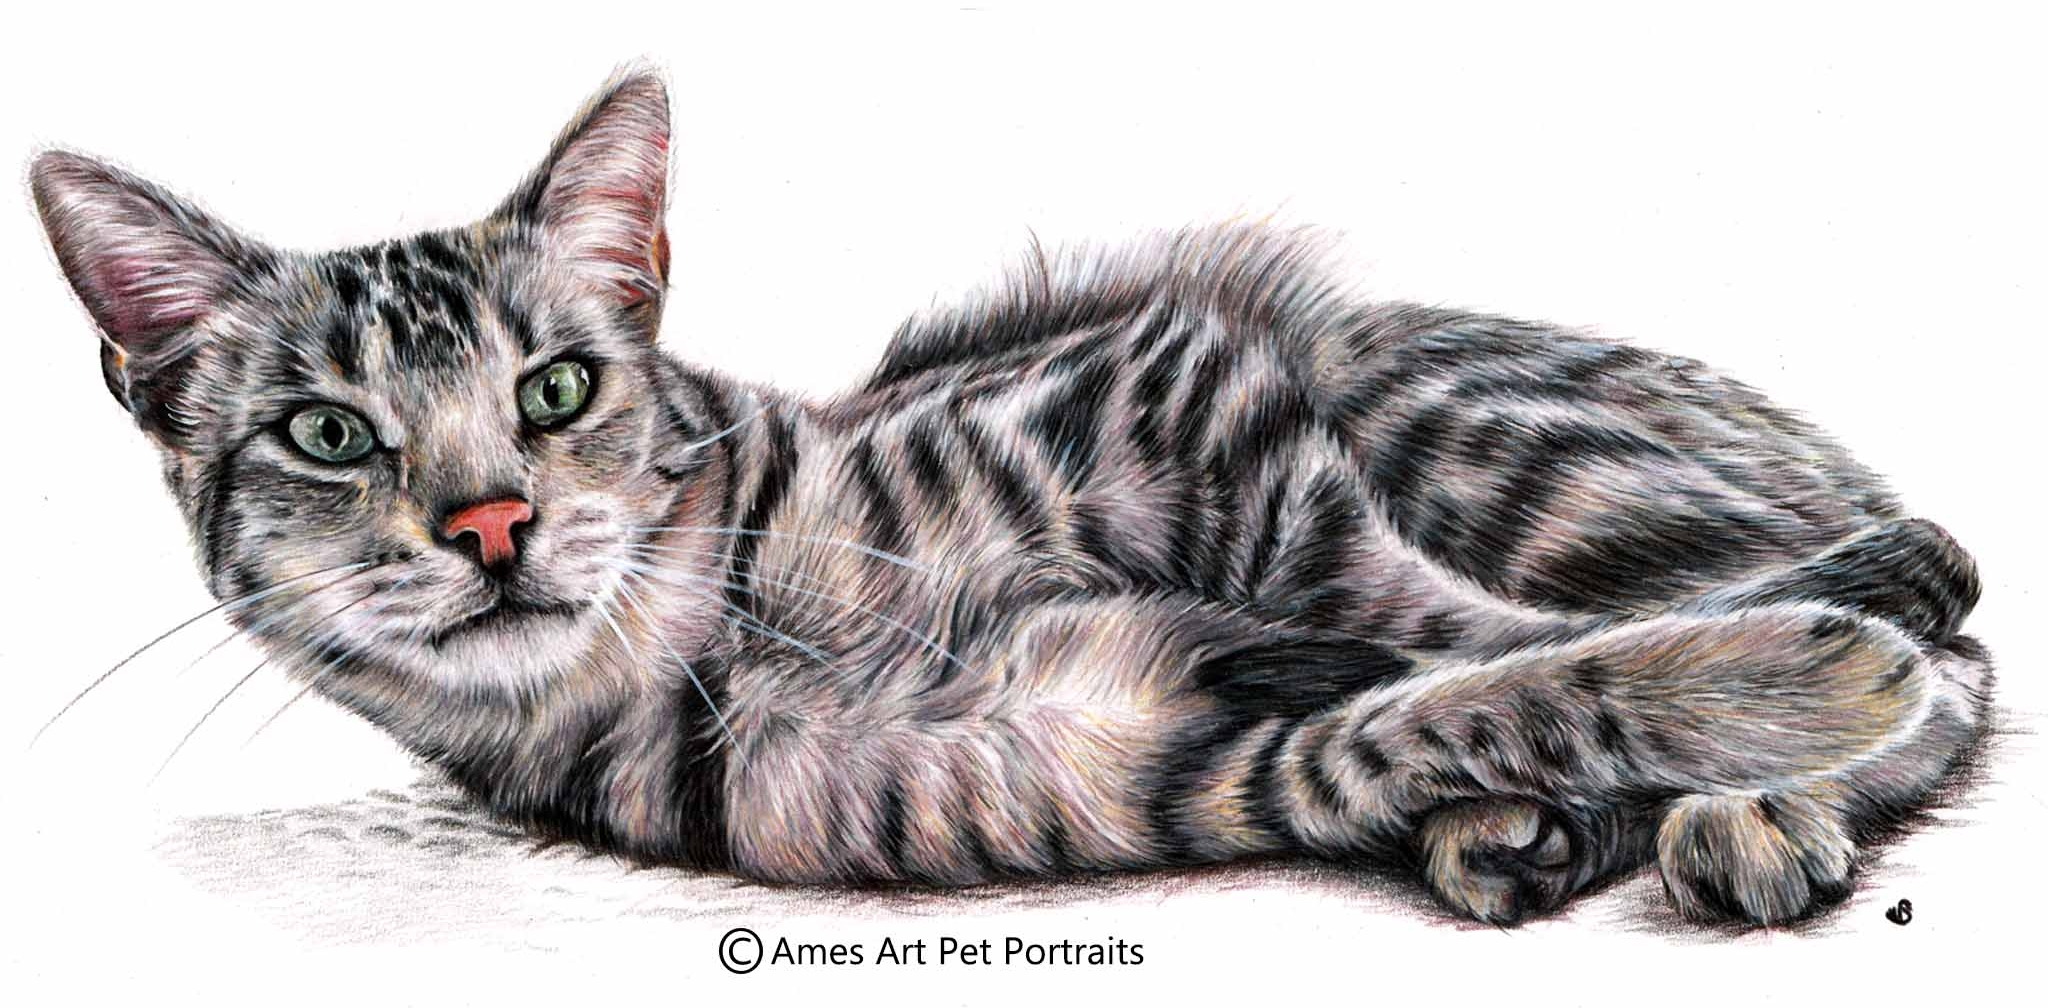 Color pencil portrait of silver tabby cat by sema martin in utah usa